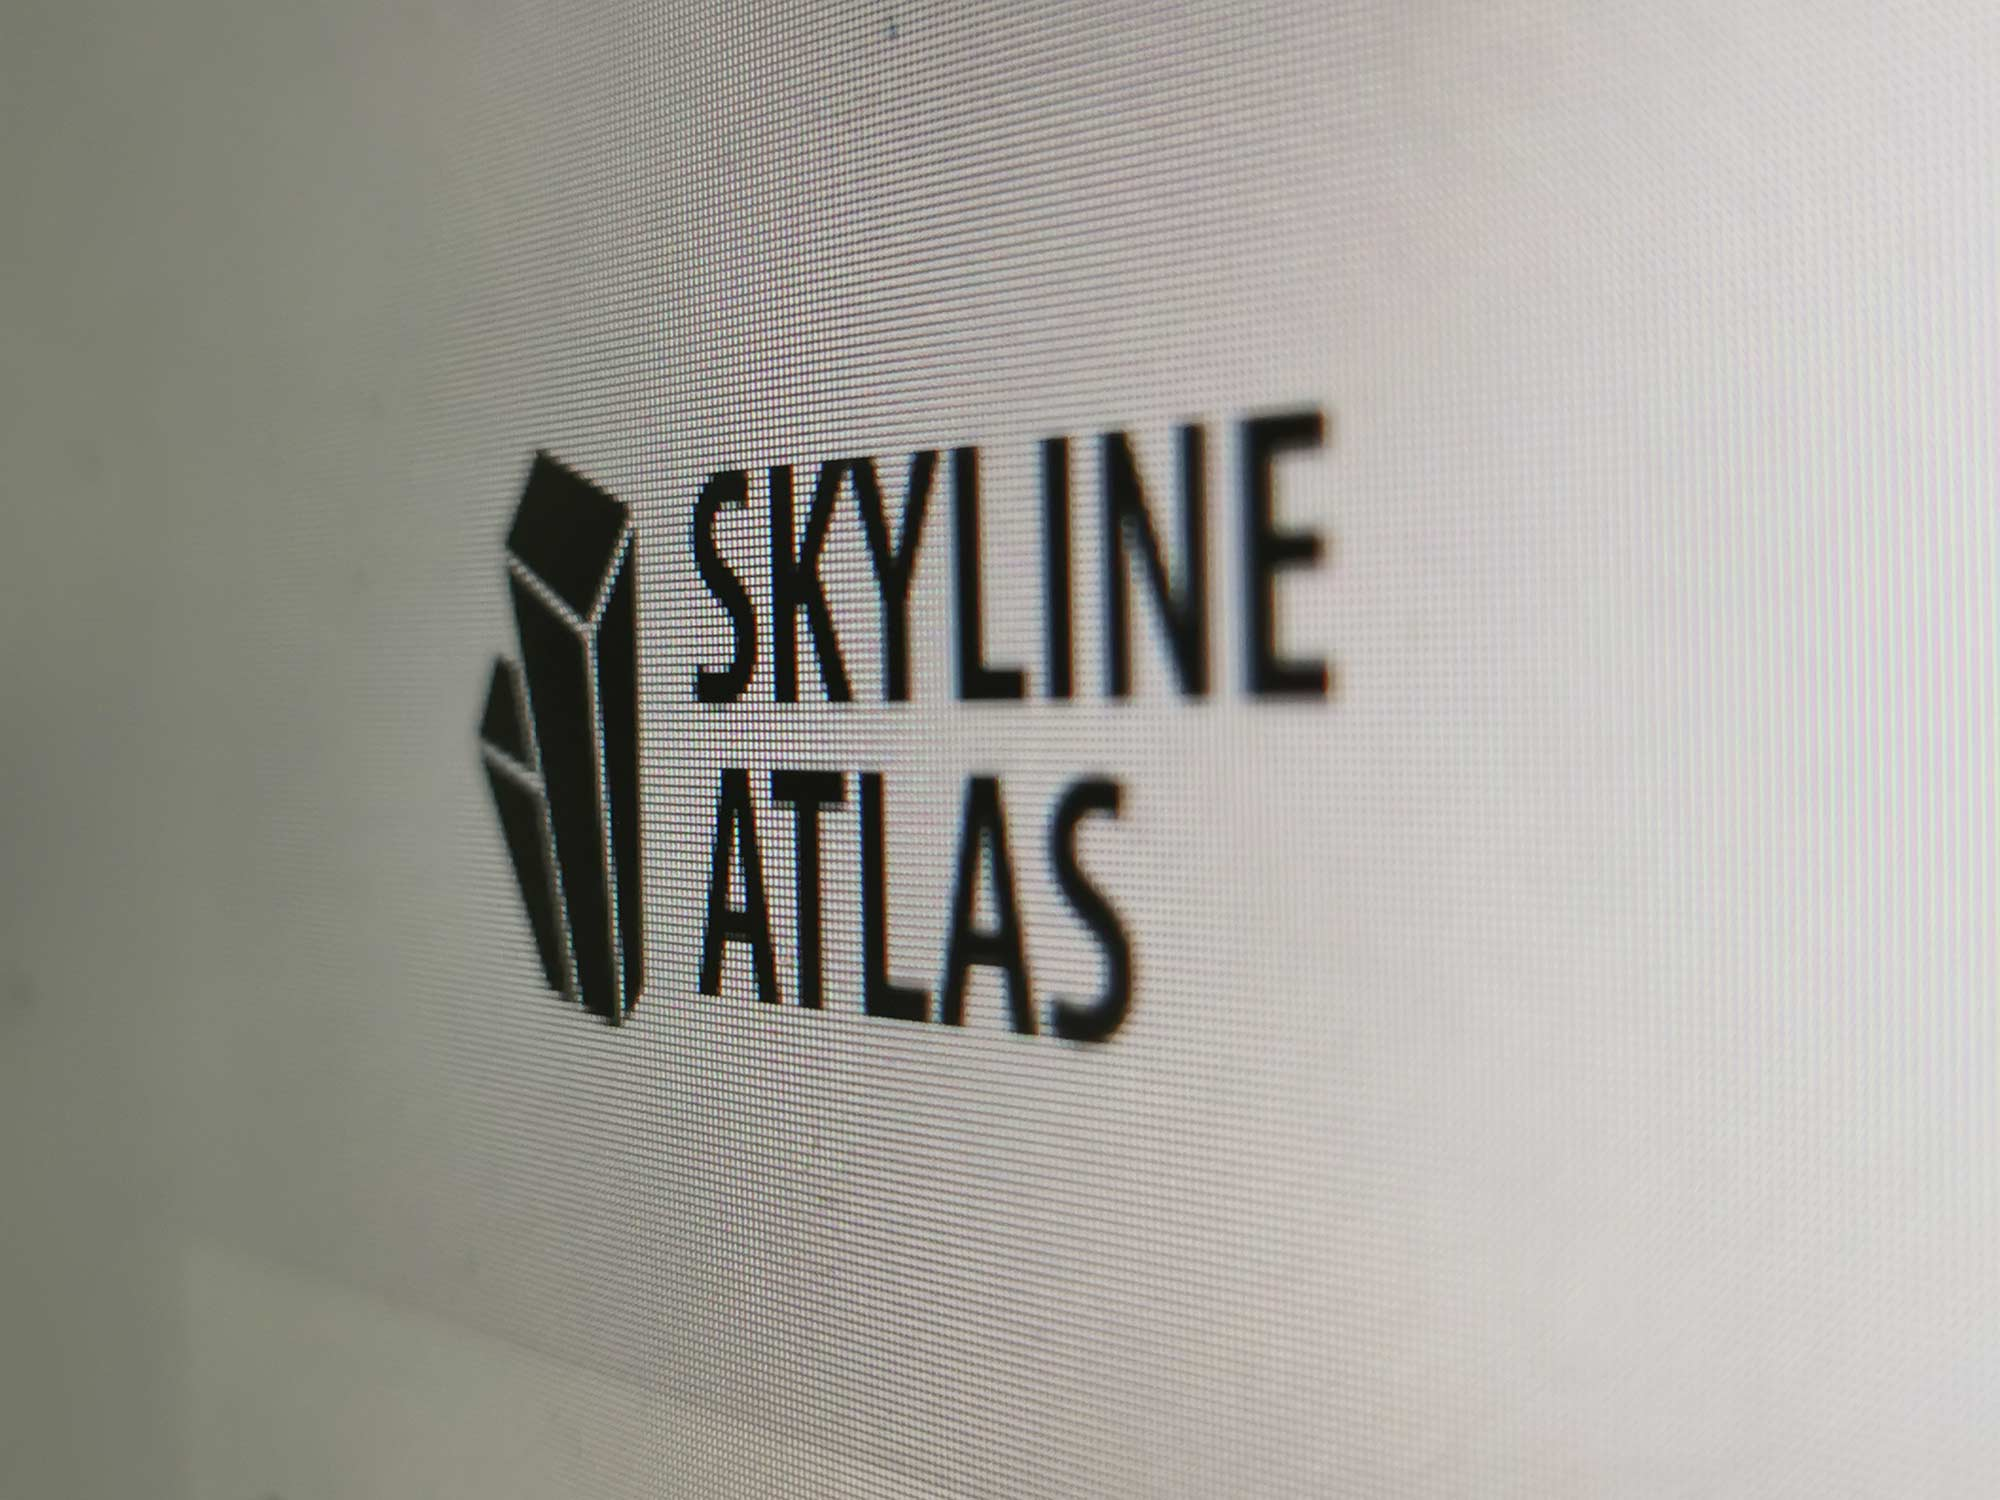 About SKYLINE ATLAS